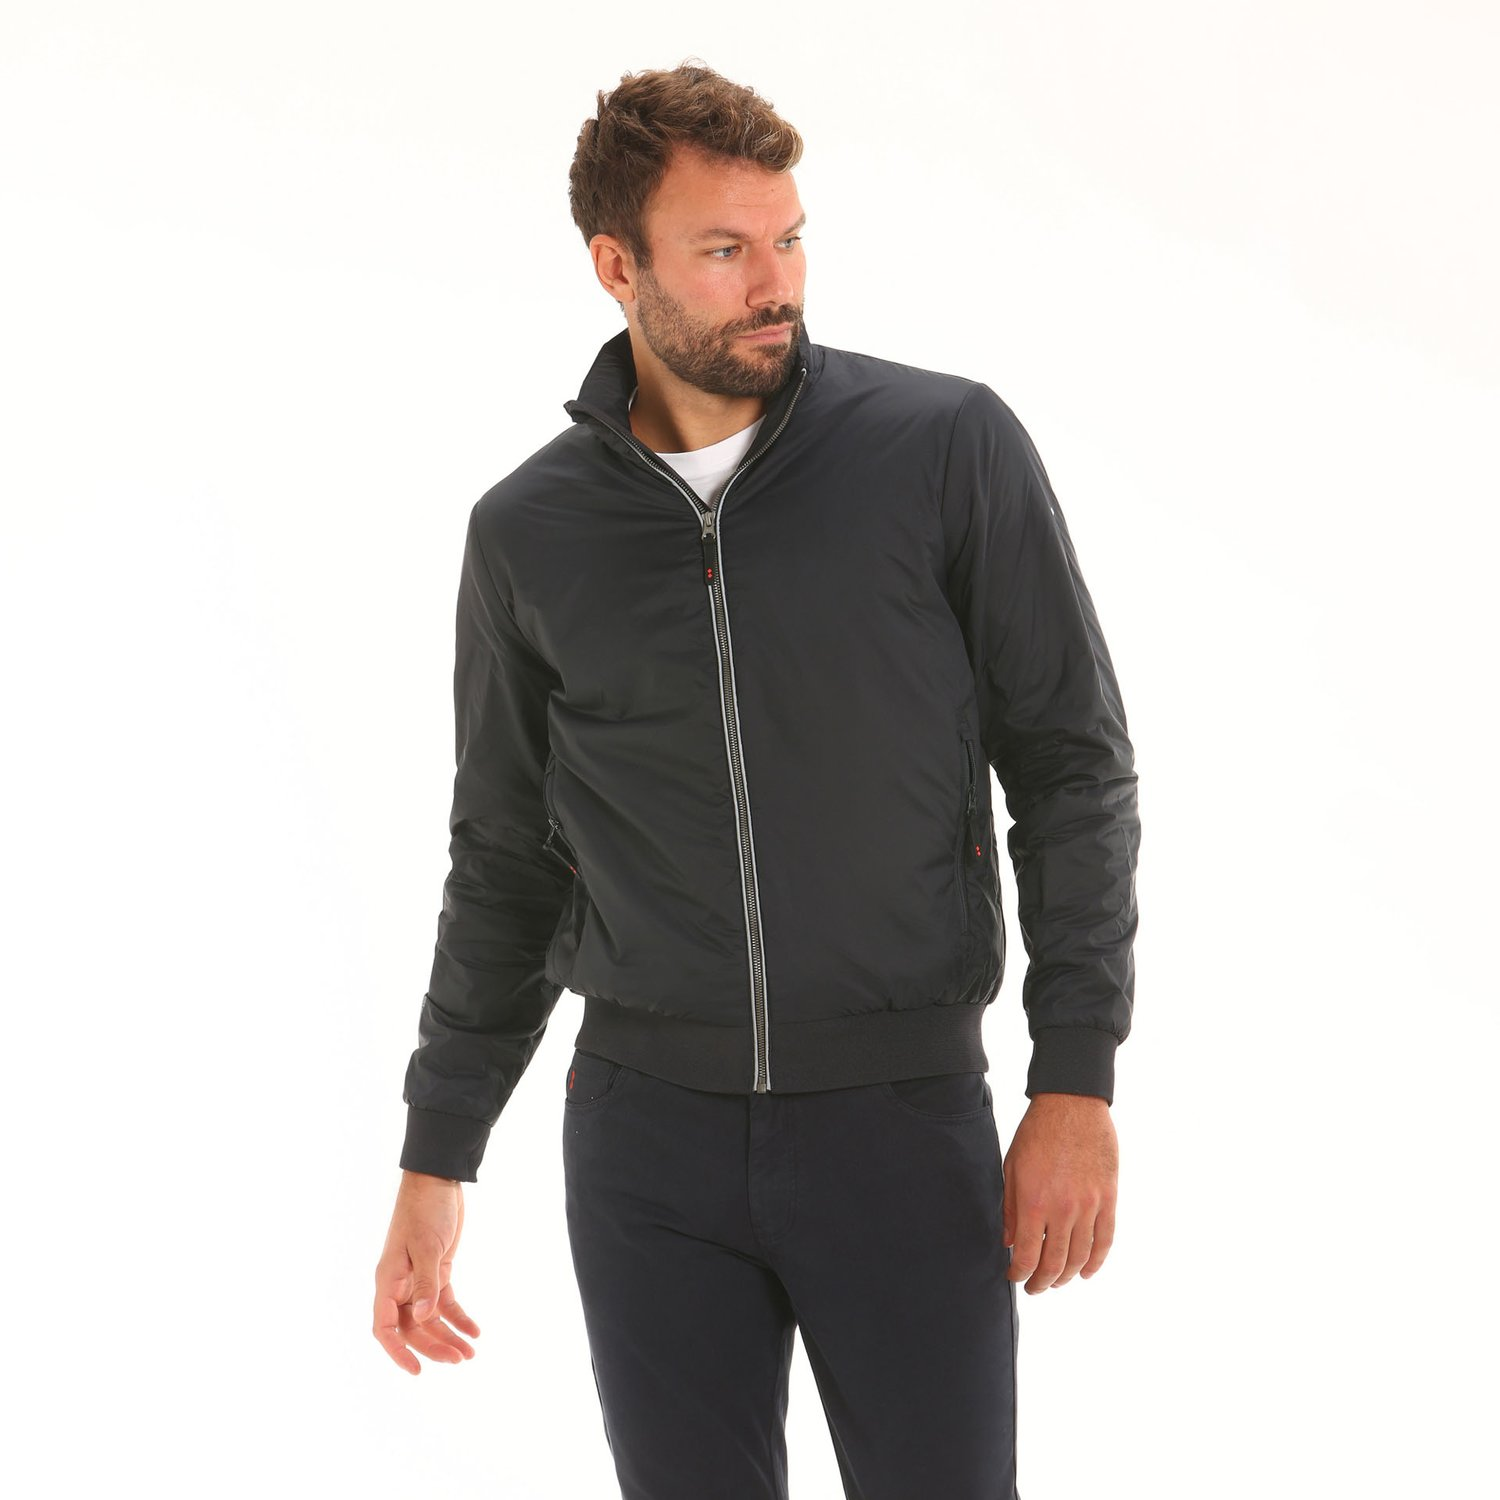 Revolution E04 men's jacket with high thermal properties - Navy